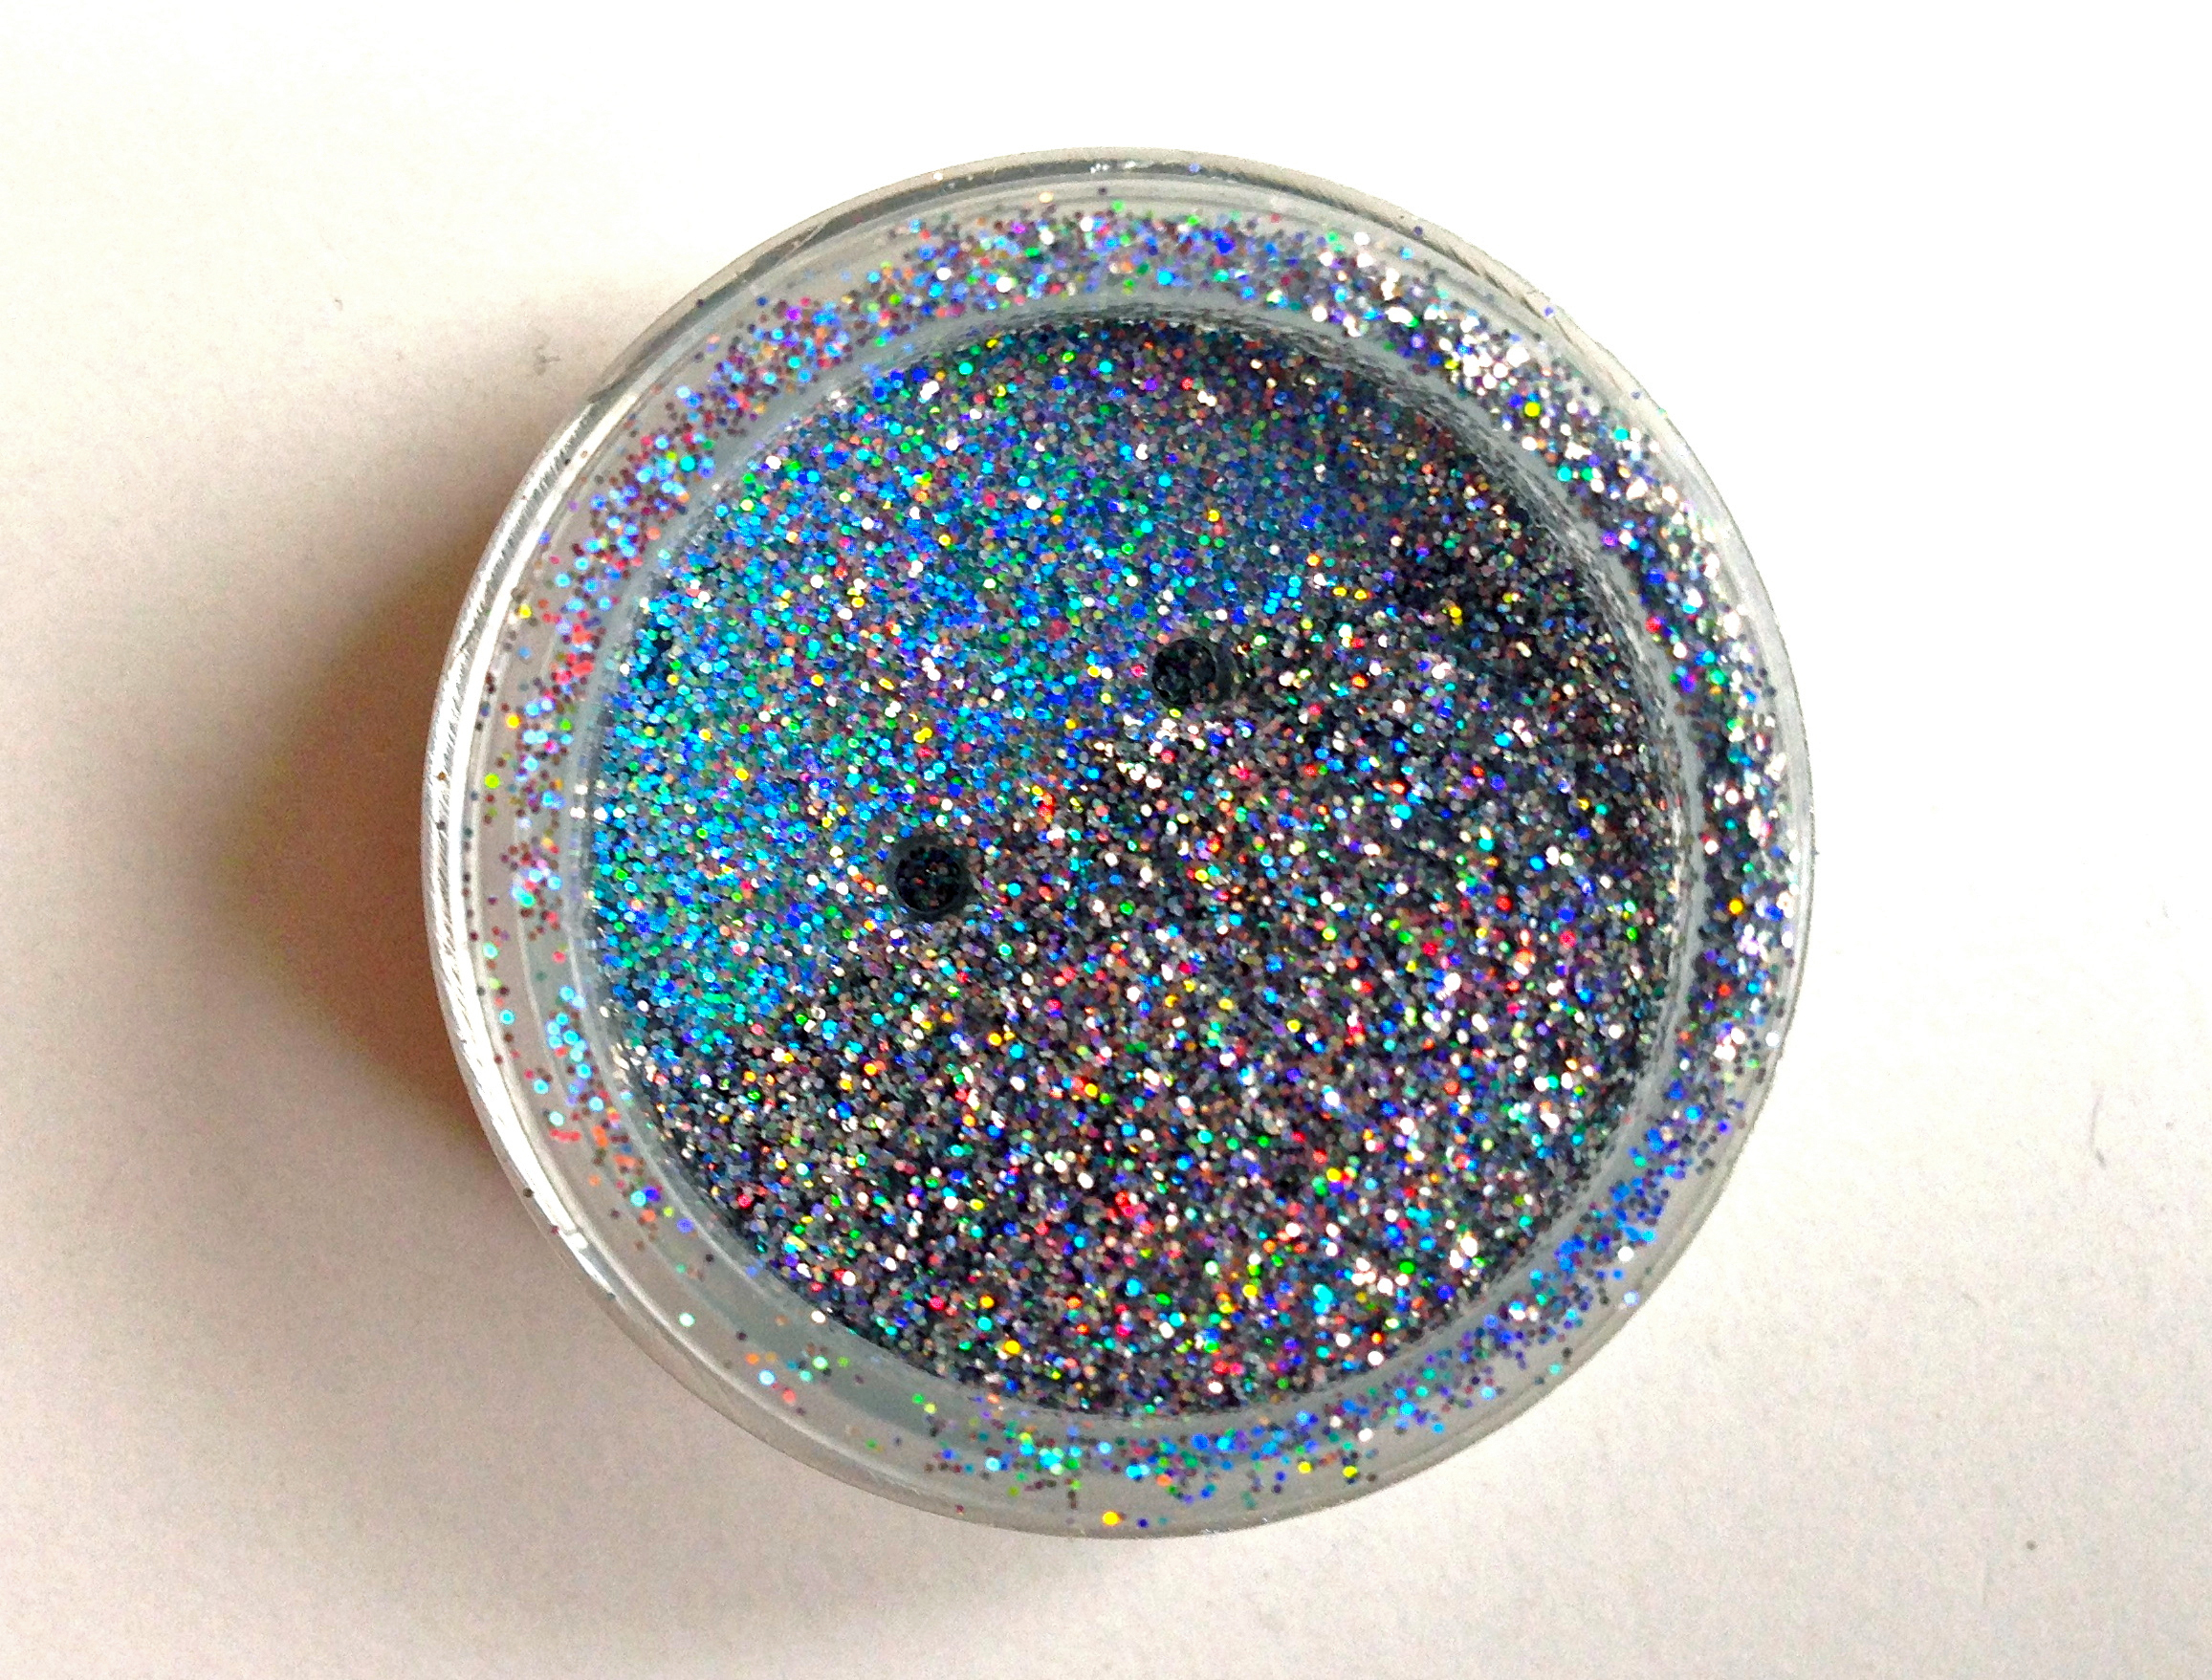 Make Up For Ever Glitter In 13 Holographic Silver